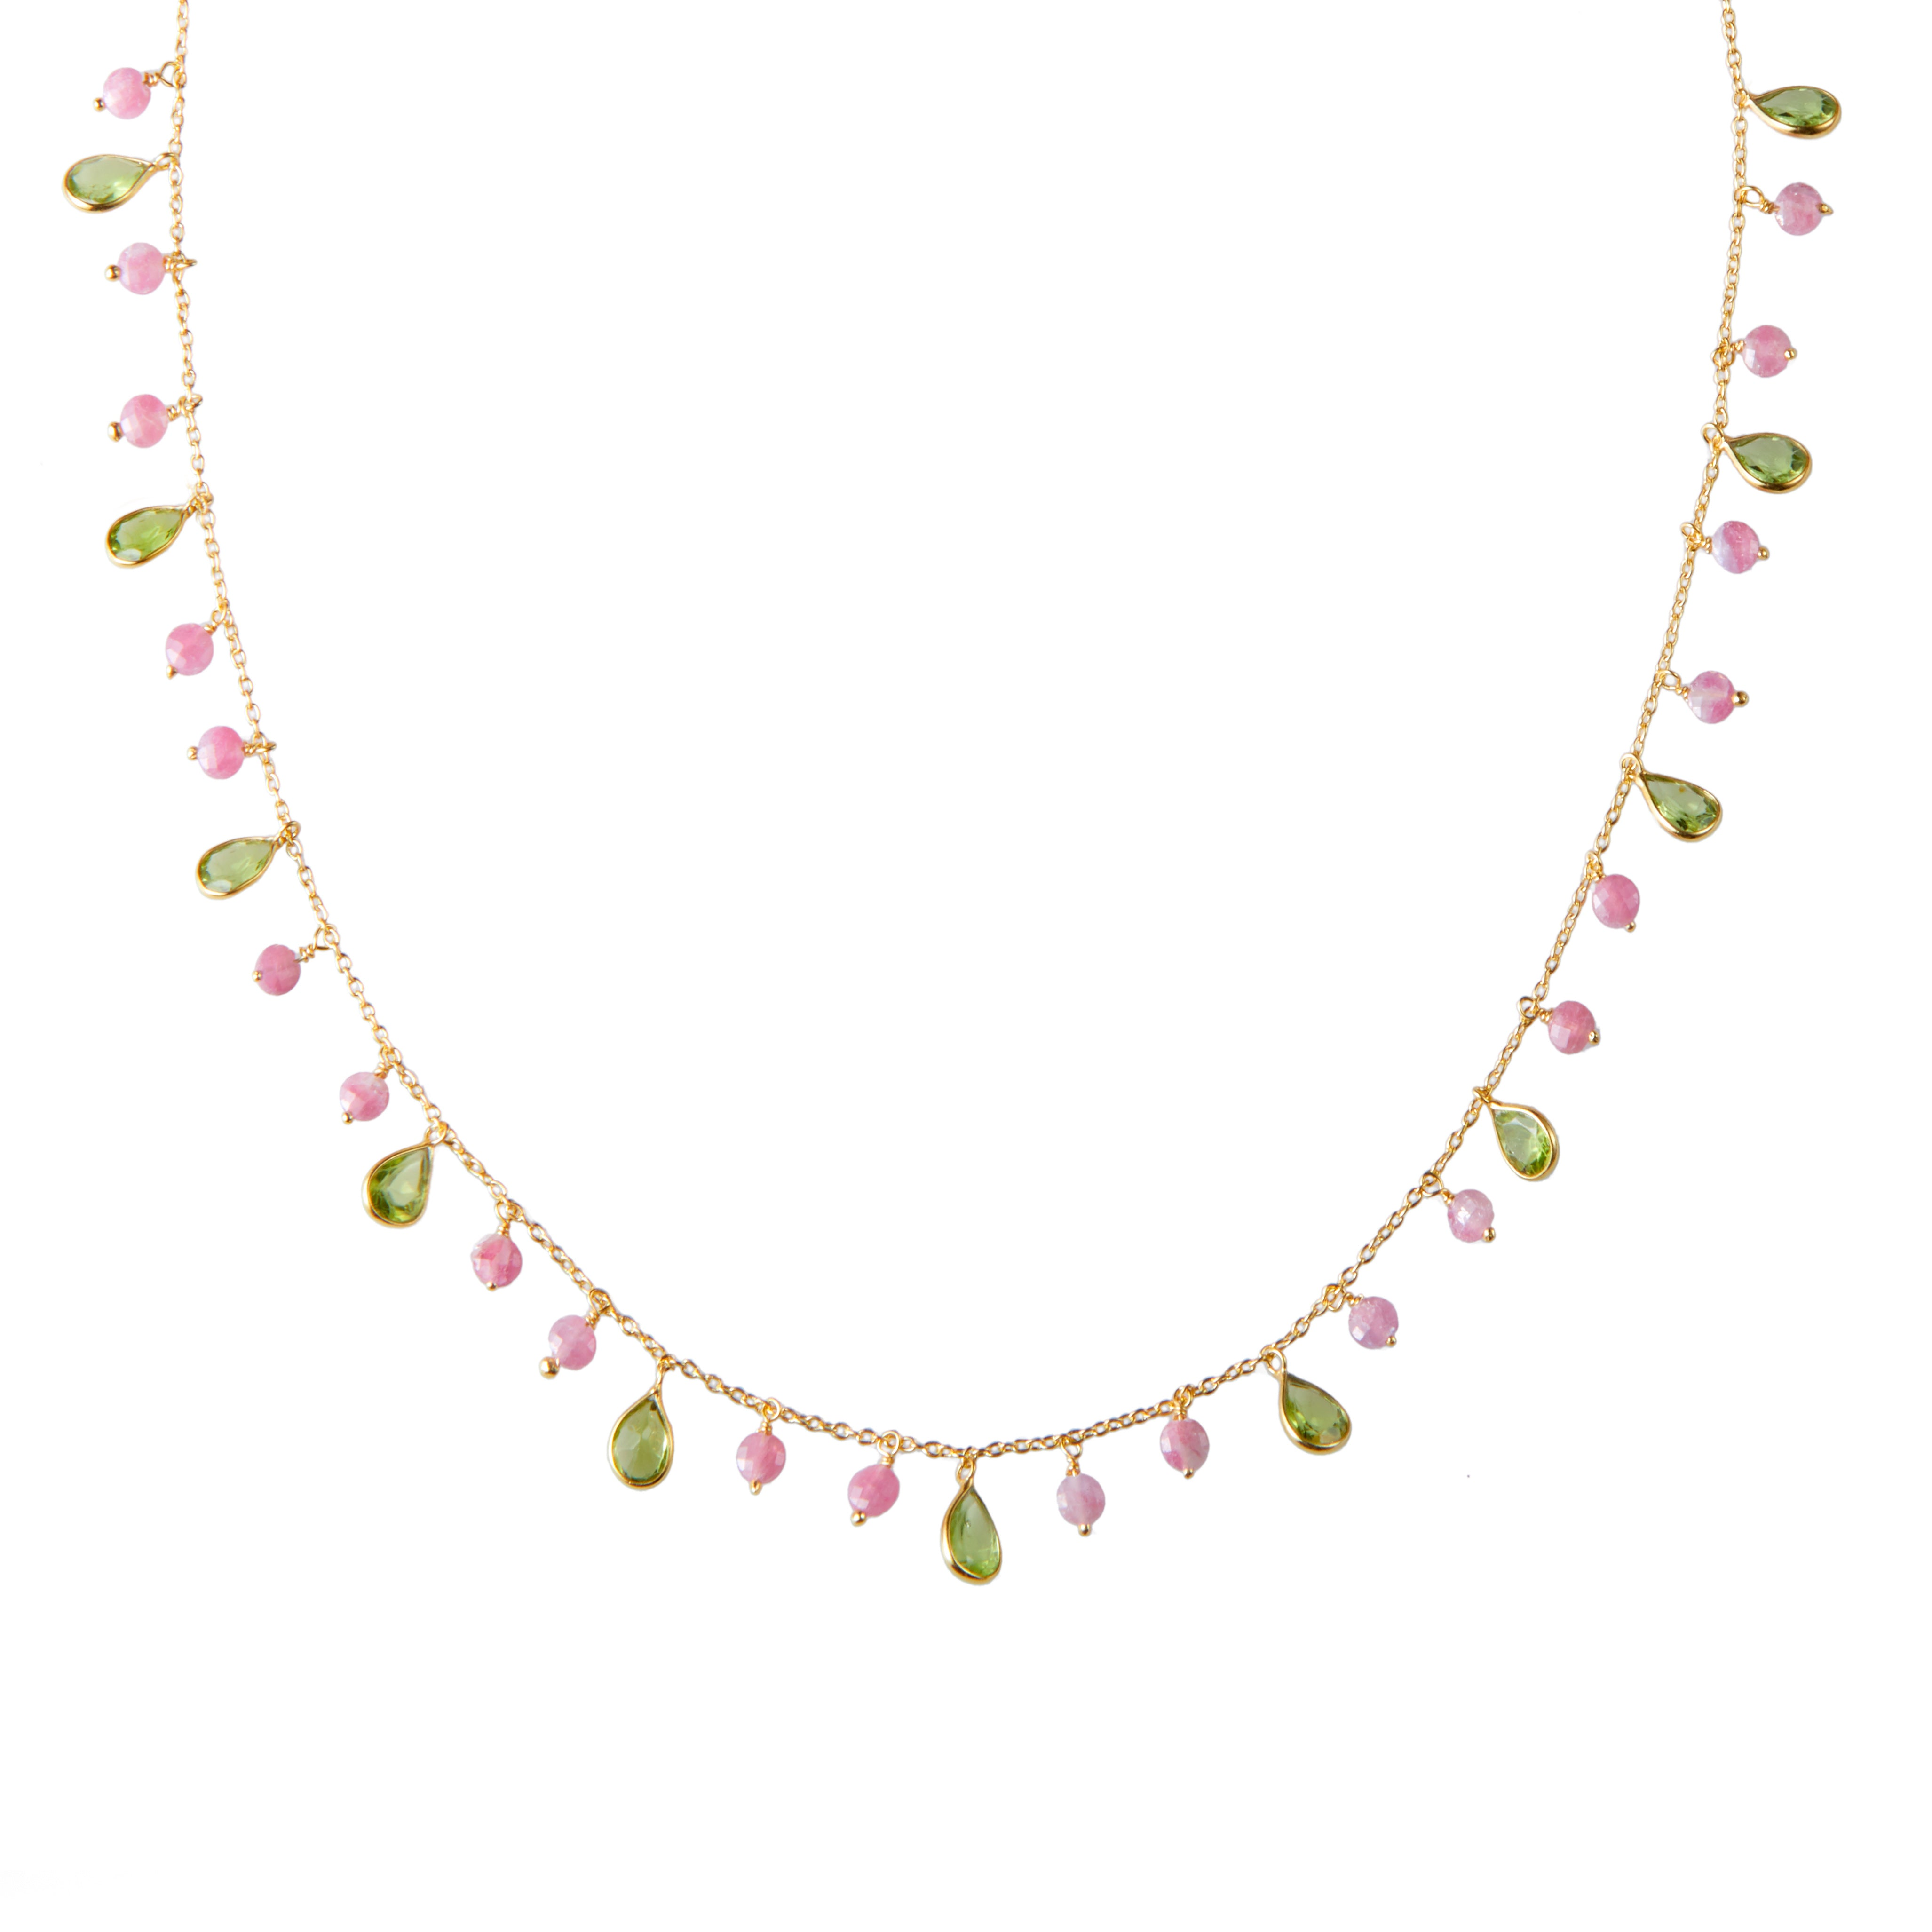 KK Necklace in Peridot and Pink Tourmaline